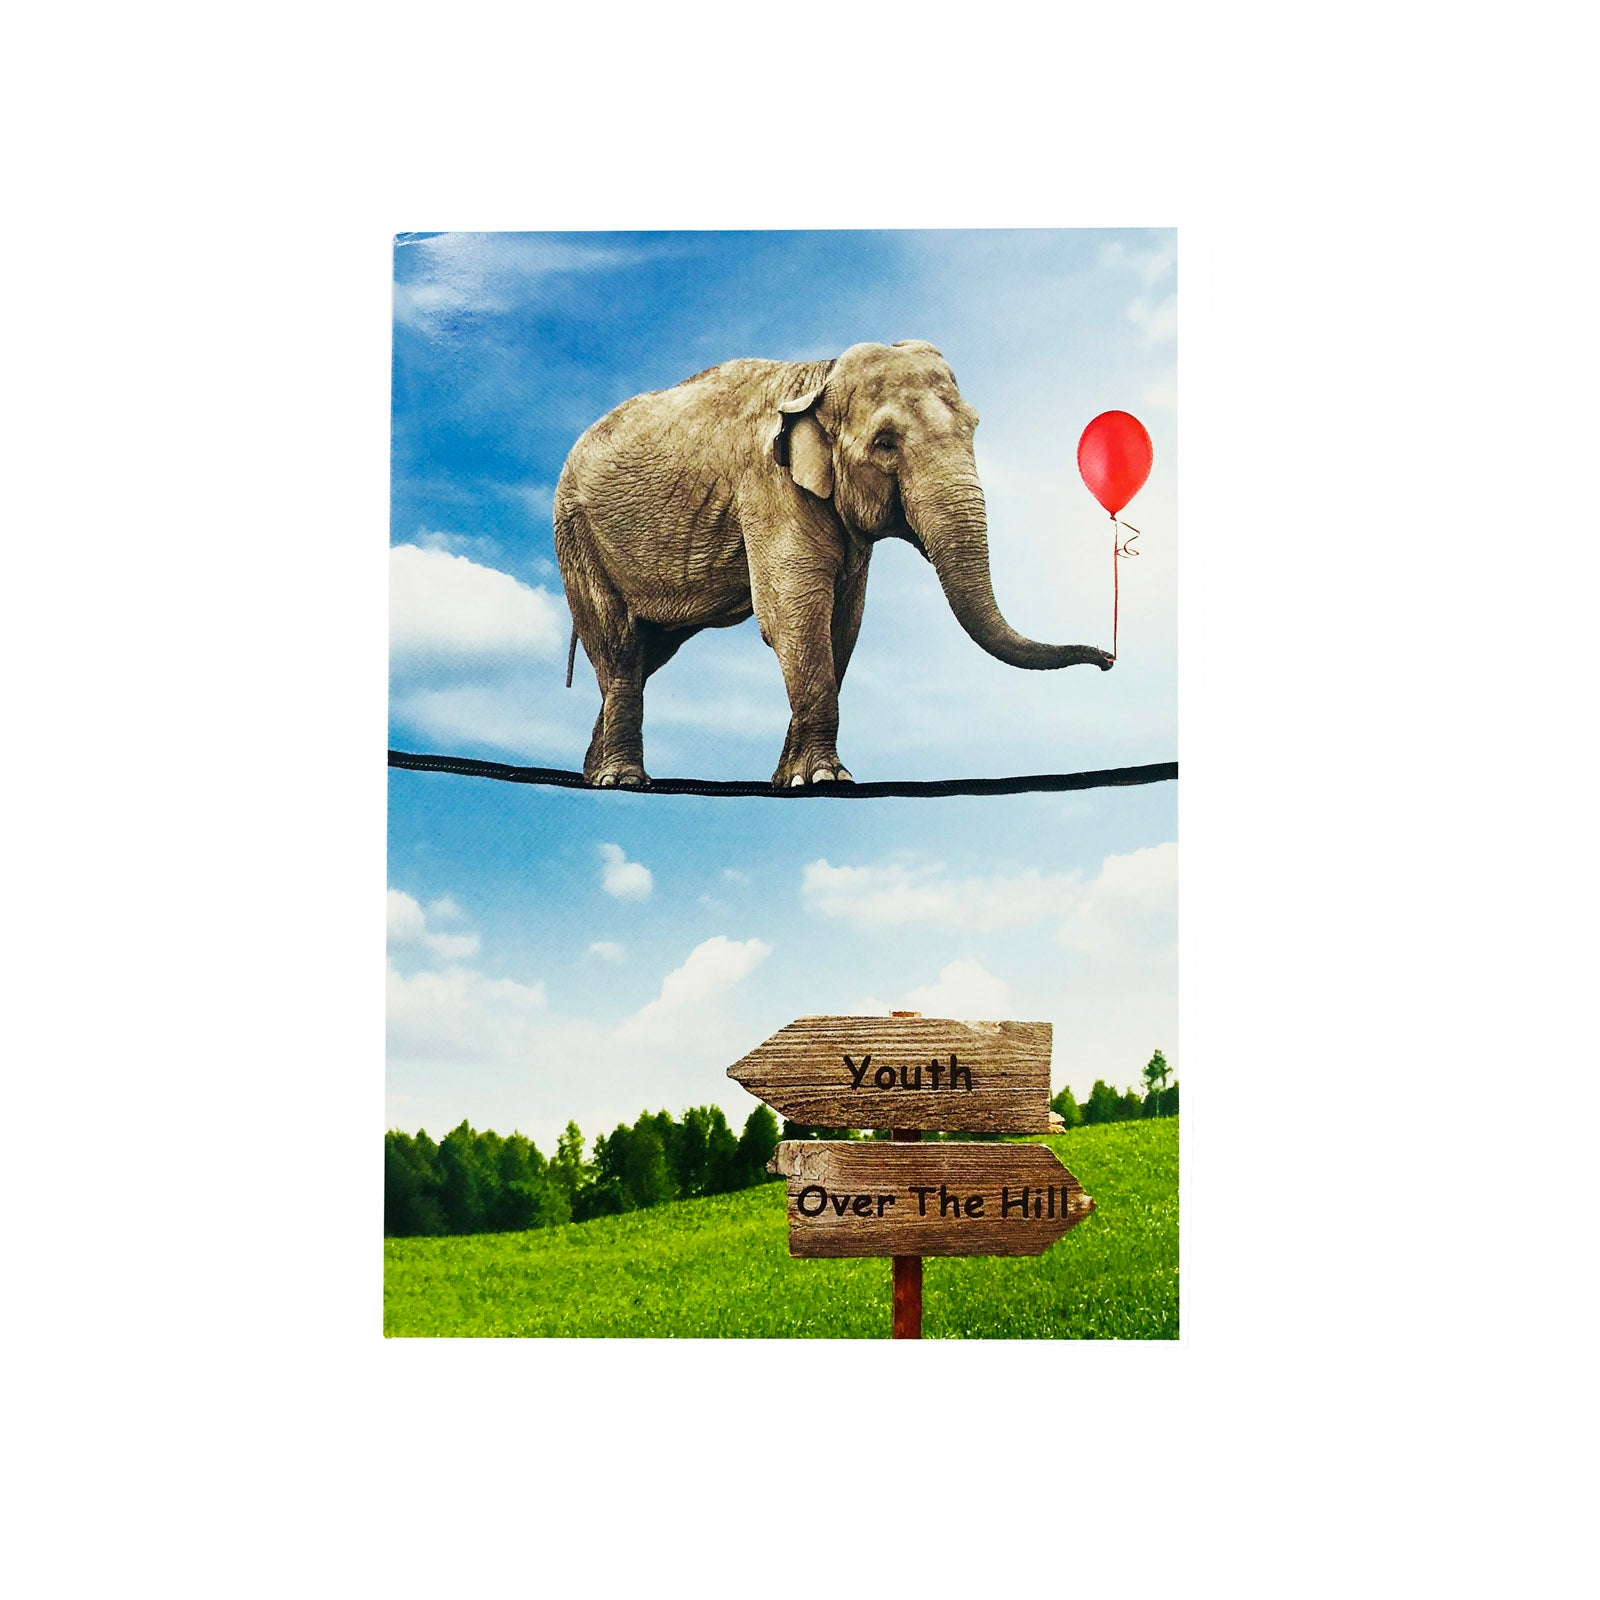 Designer Greetings Birthday Card - Over The Hill - Elephant Tightrope